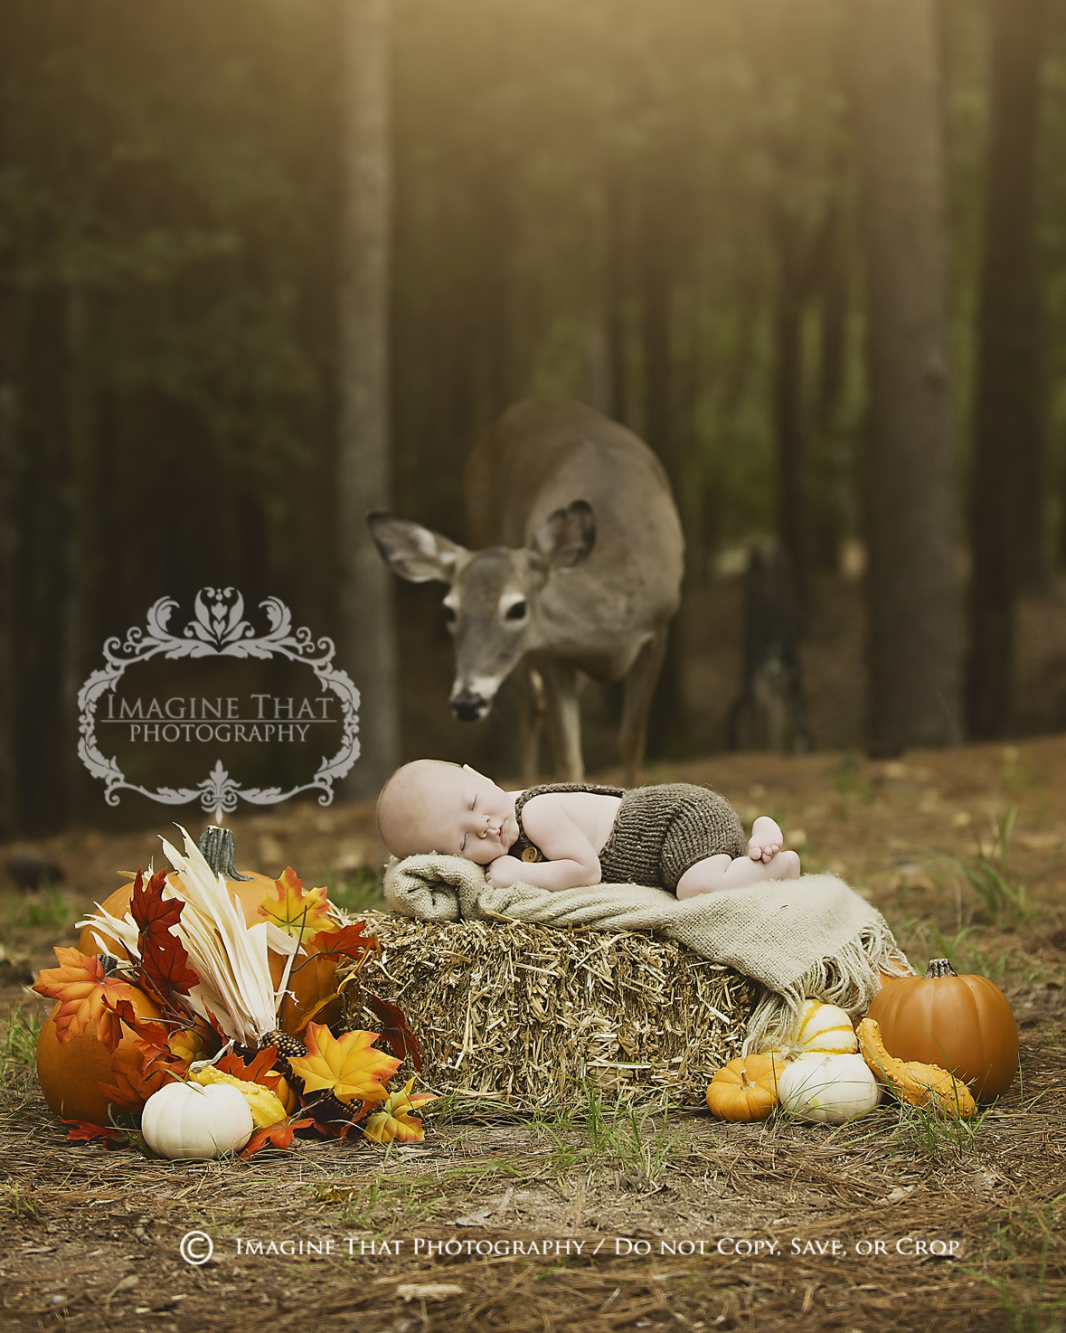 Perfect Timing: Deer Photobombs Baby Pictures in Louisiana